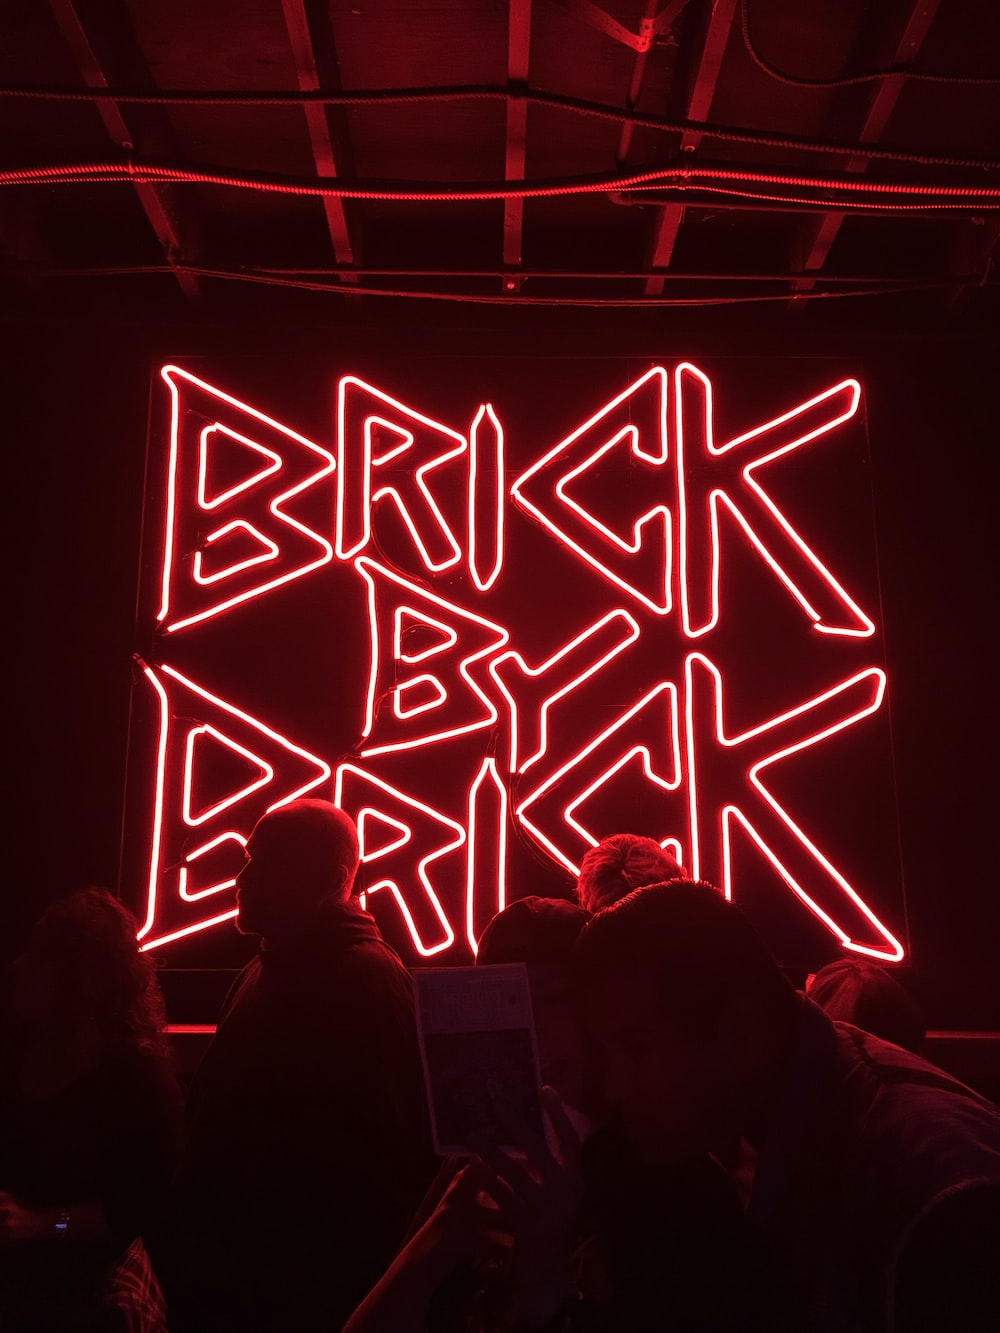 Brick by Brick LED signage